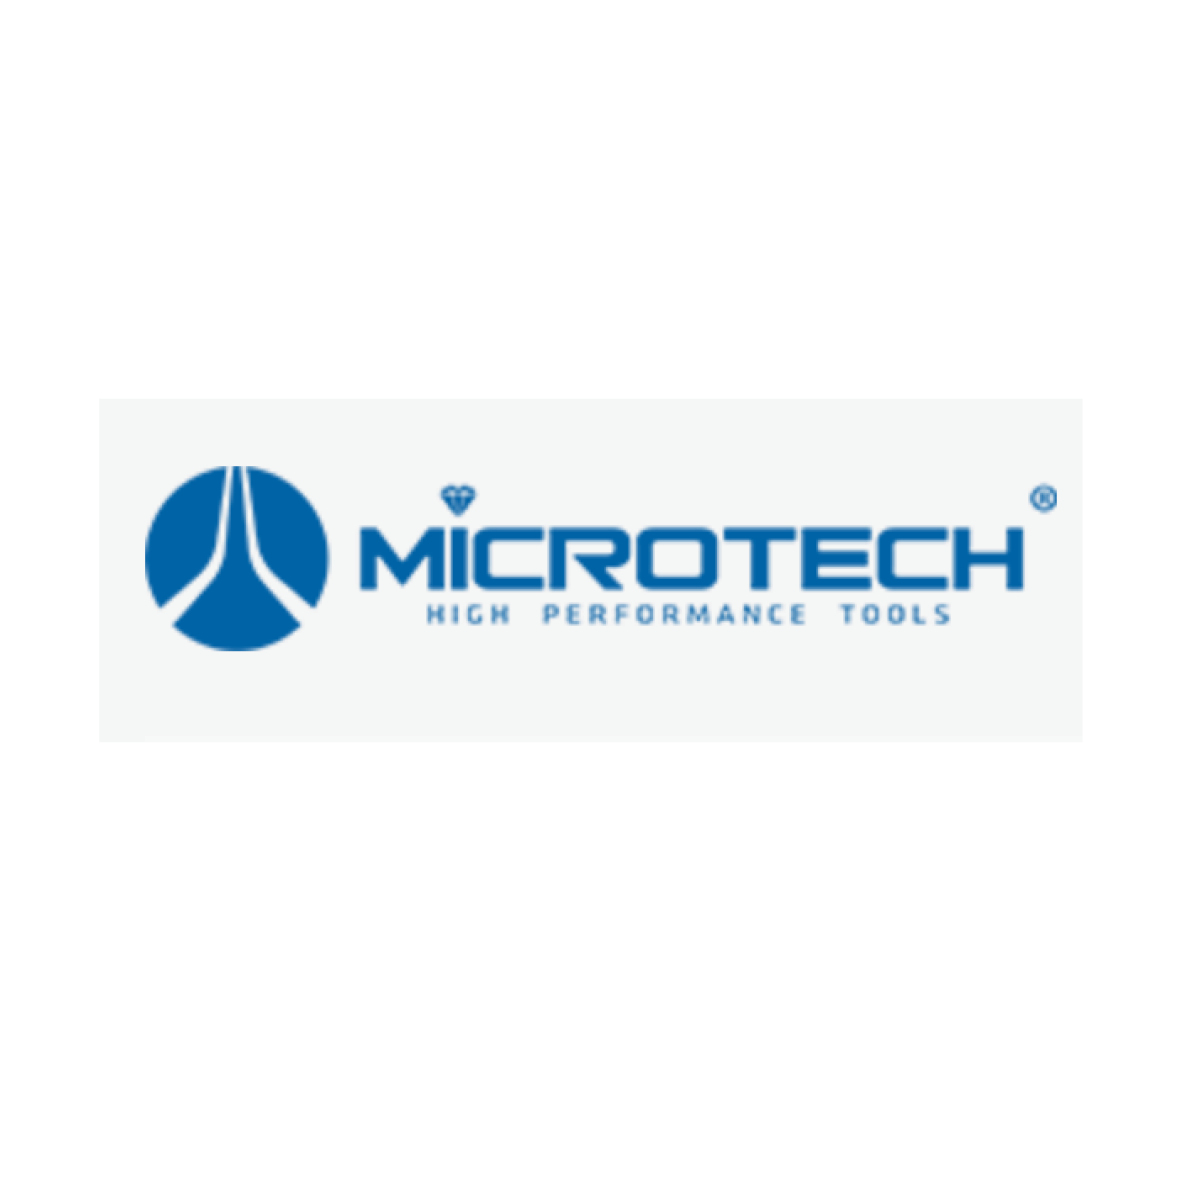 microtech LEADING MANUFACTURER OF PCD TOOLS